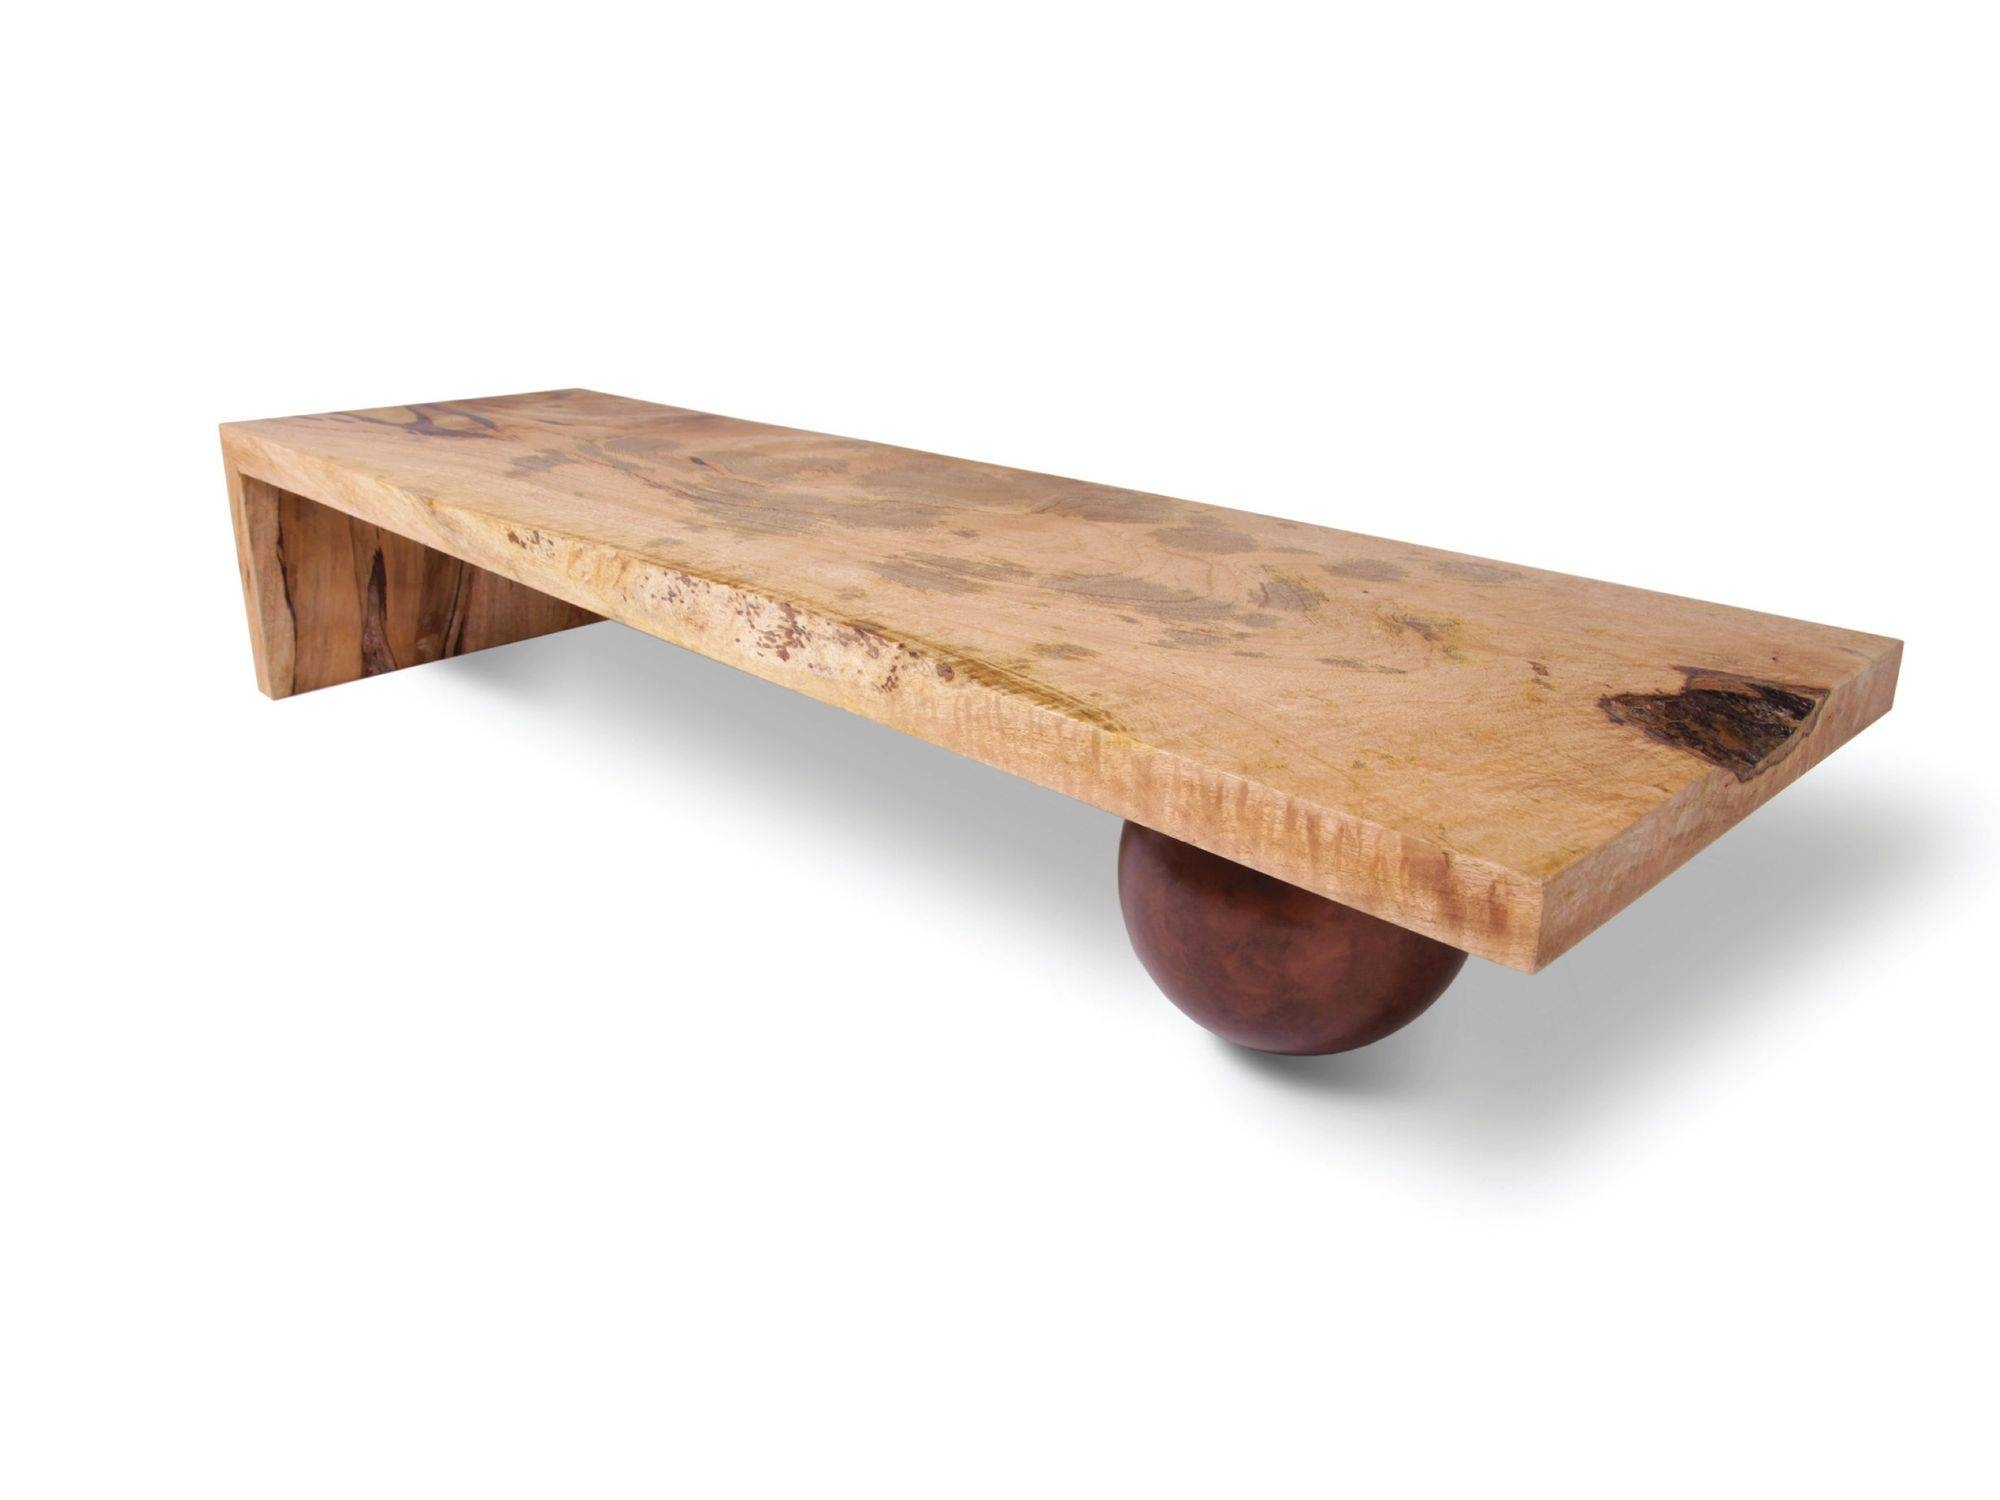 Mesmerizing Low Square Unpainted Reclaimed Wood Coffee Table With throughout Low Wooden Coffee Tables (Image 12 of 15)